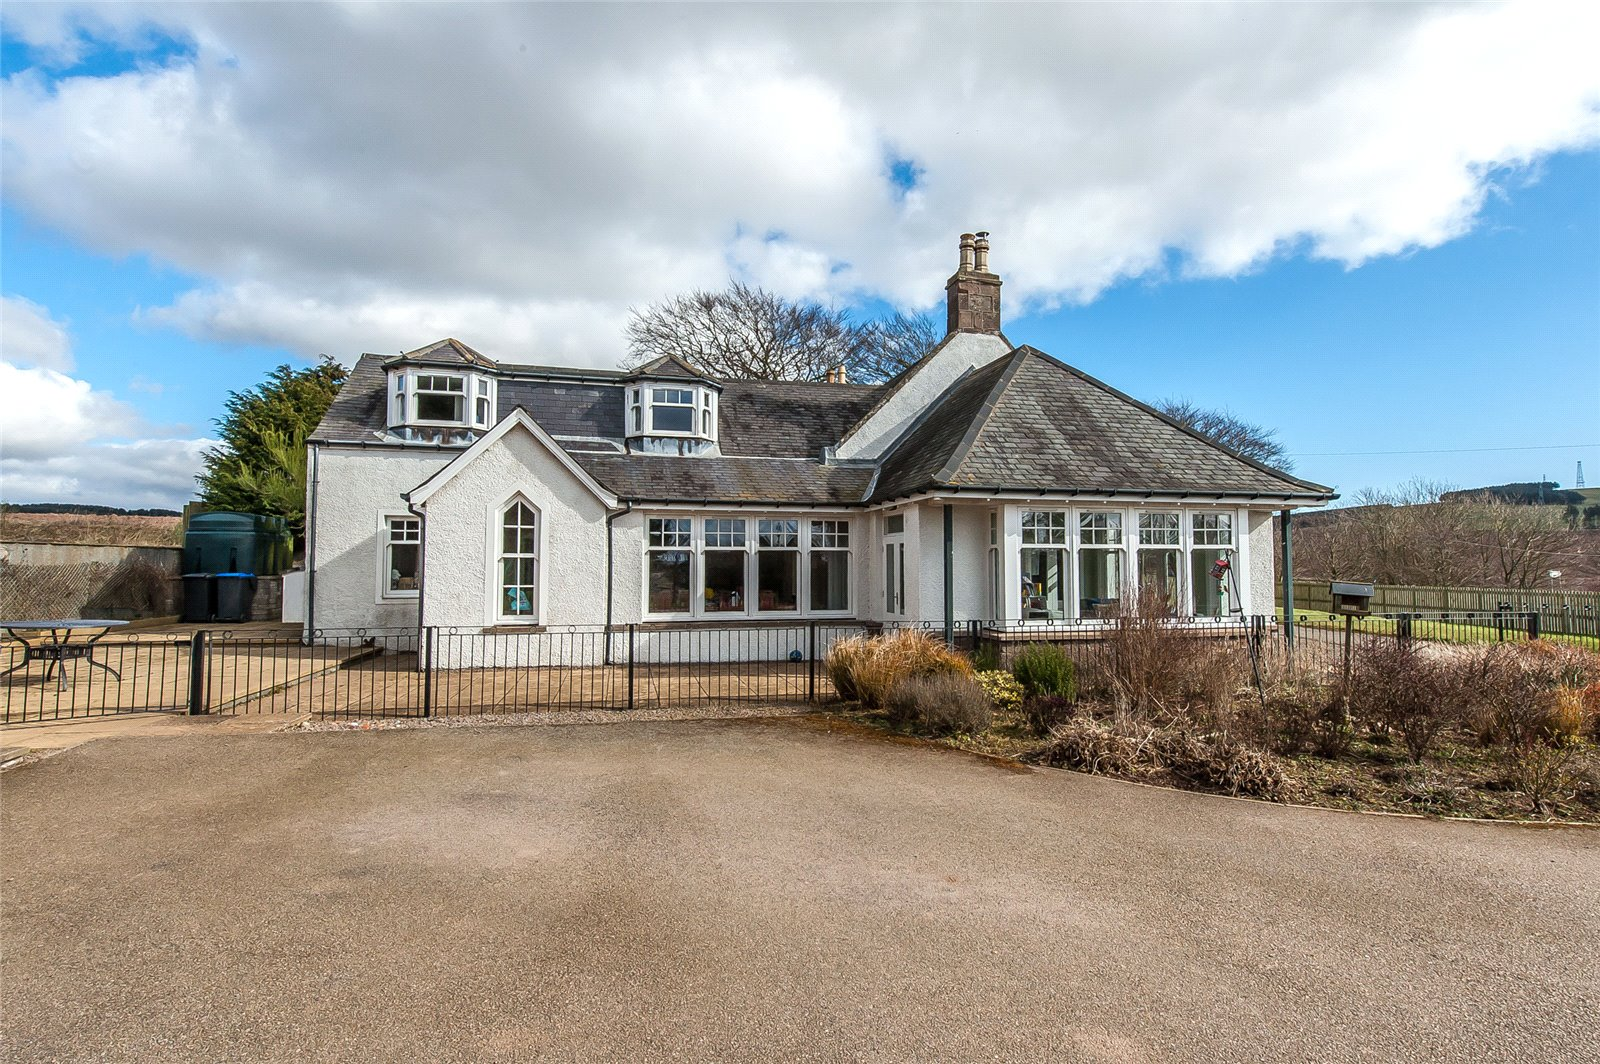 Our latest properties for sale and to let (30th March 2020)